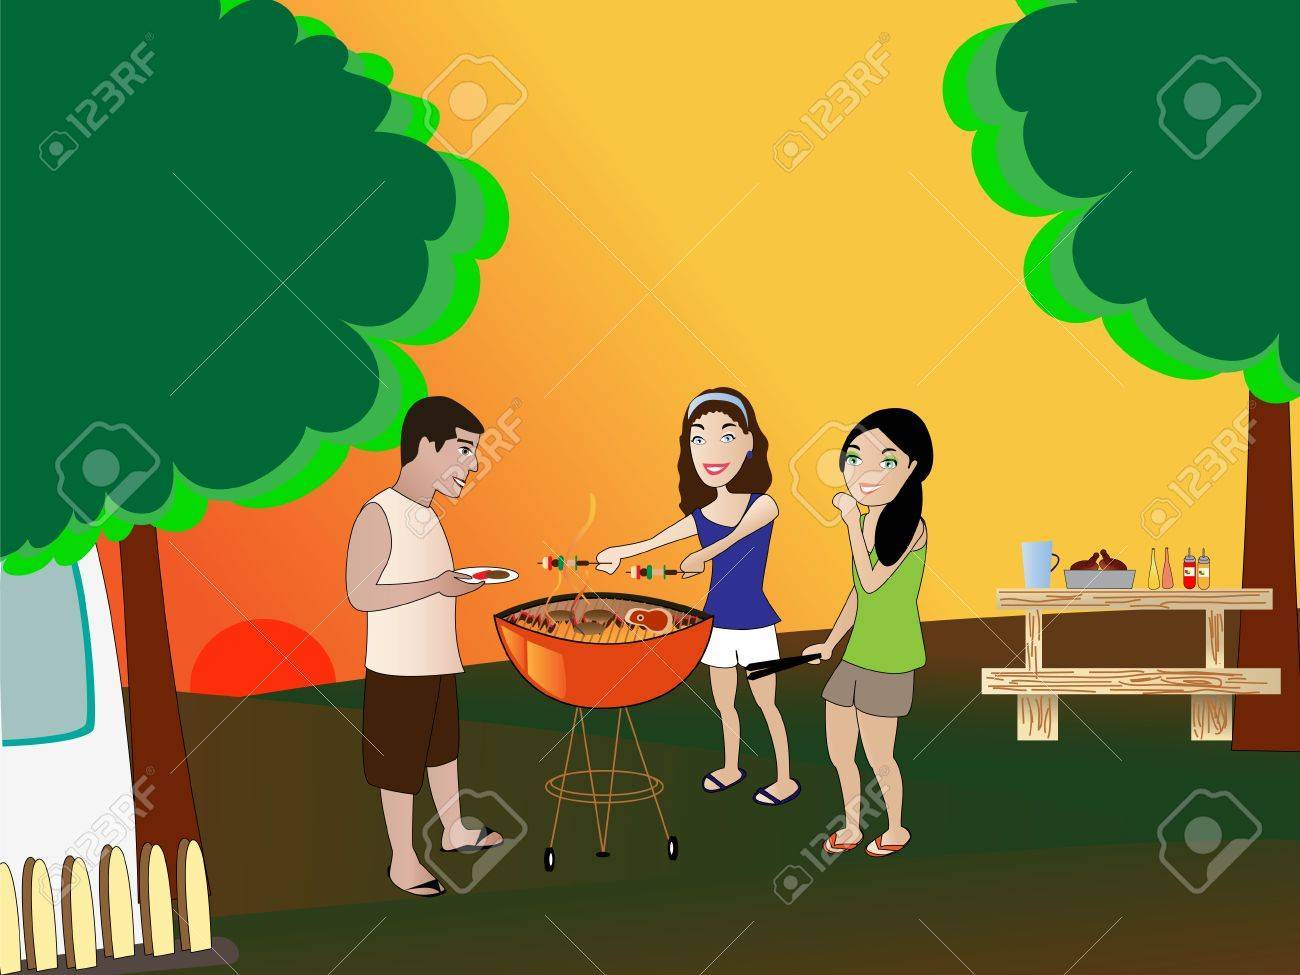 summer barbeque backyard scene royalty free cliparts vectors and